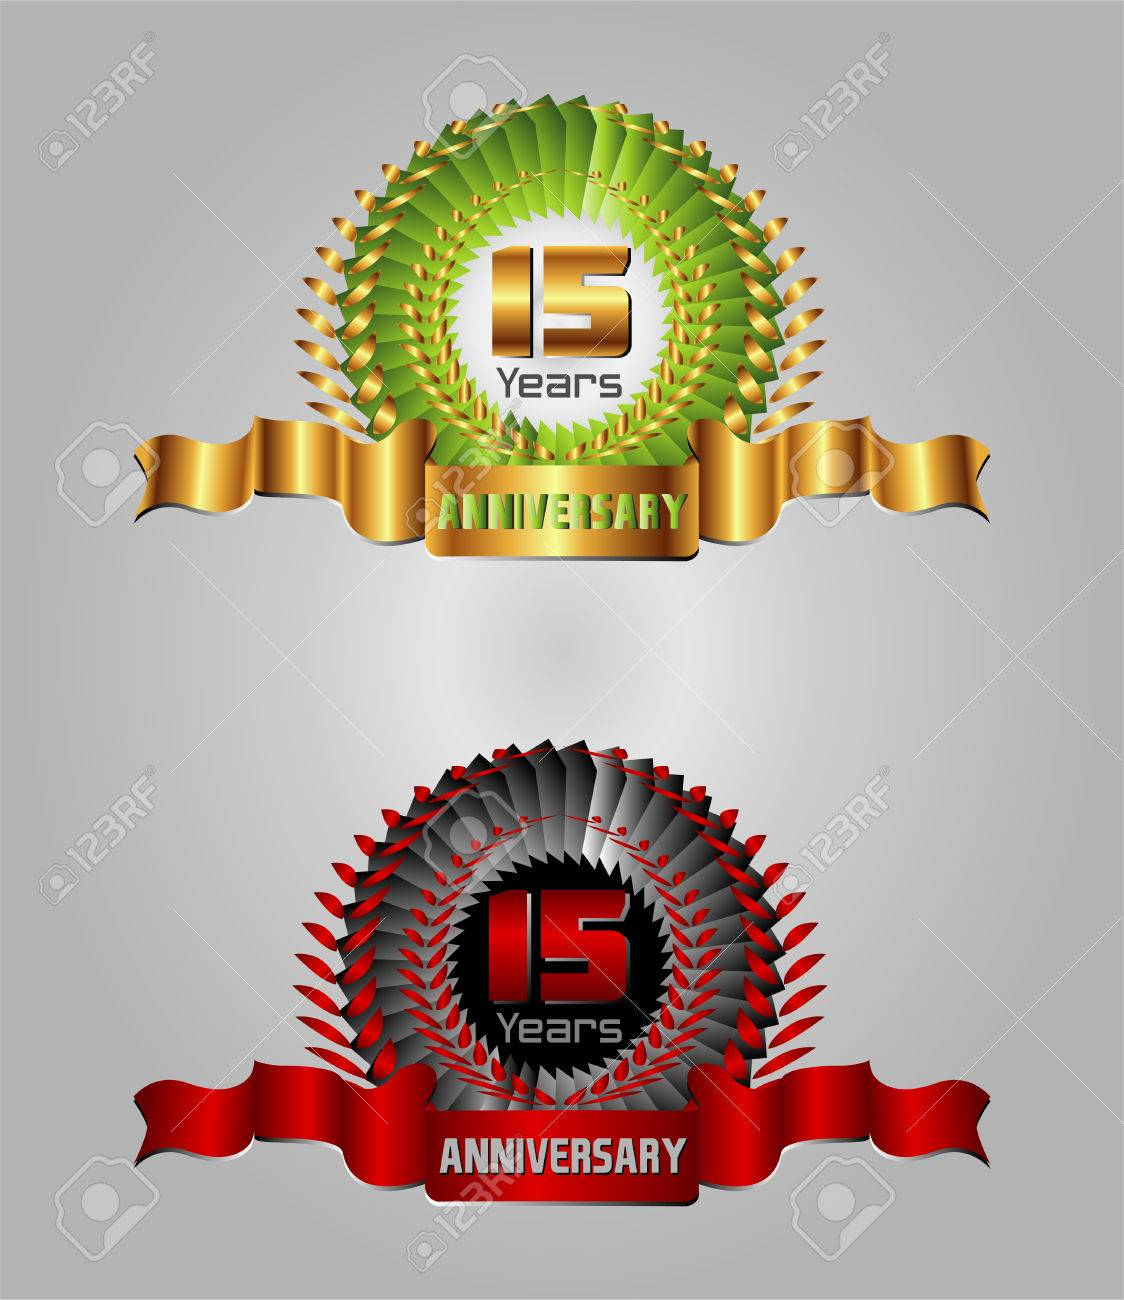 15 Year Anniversary Vector Celebration Royalty Free Cliparts